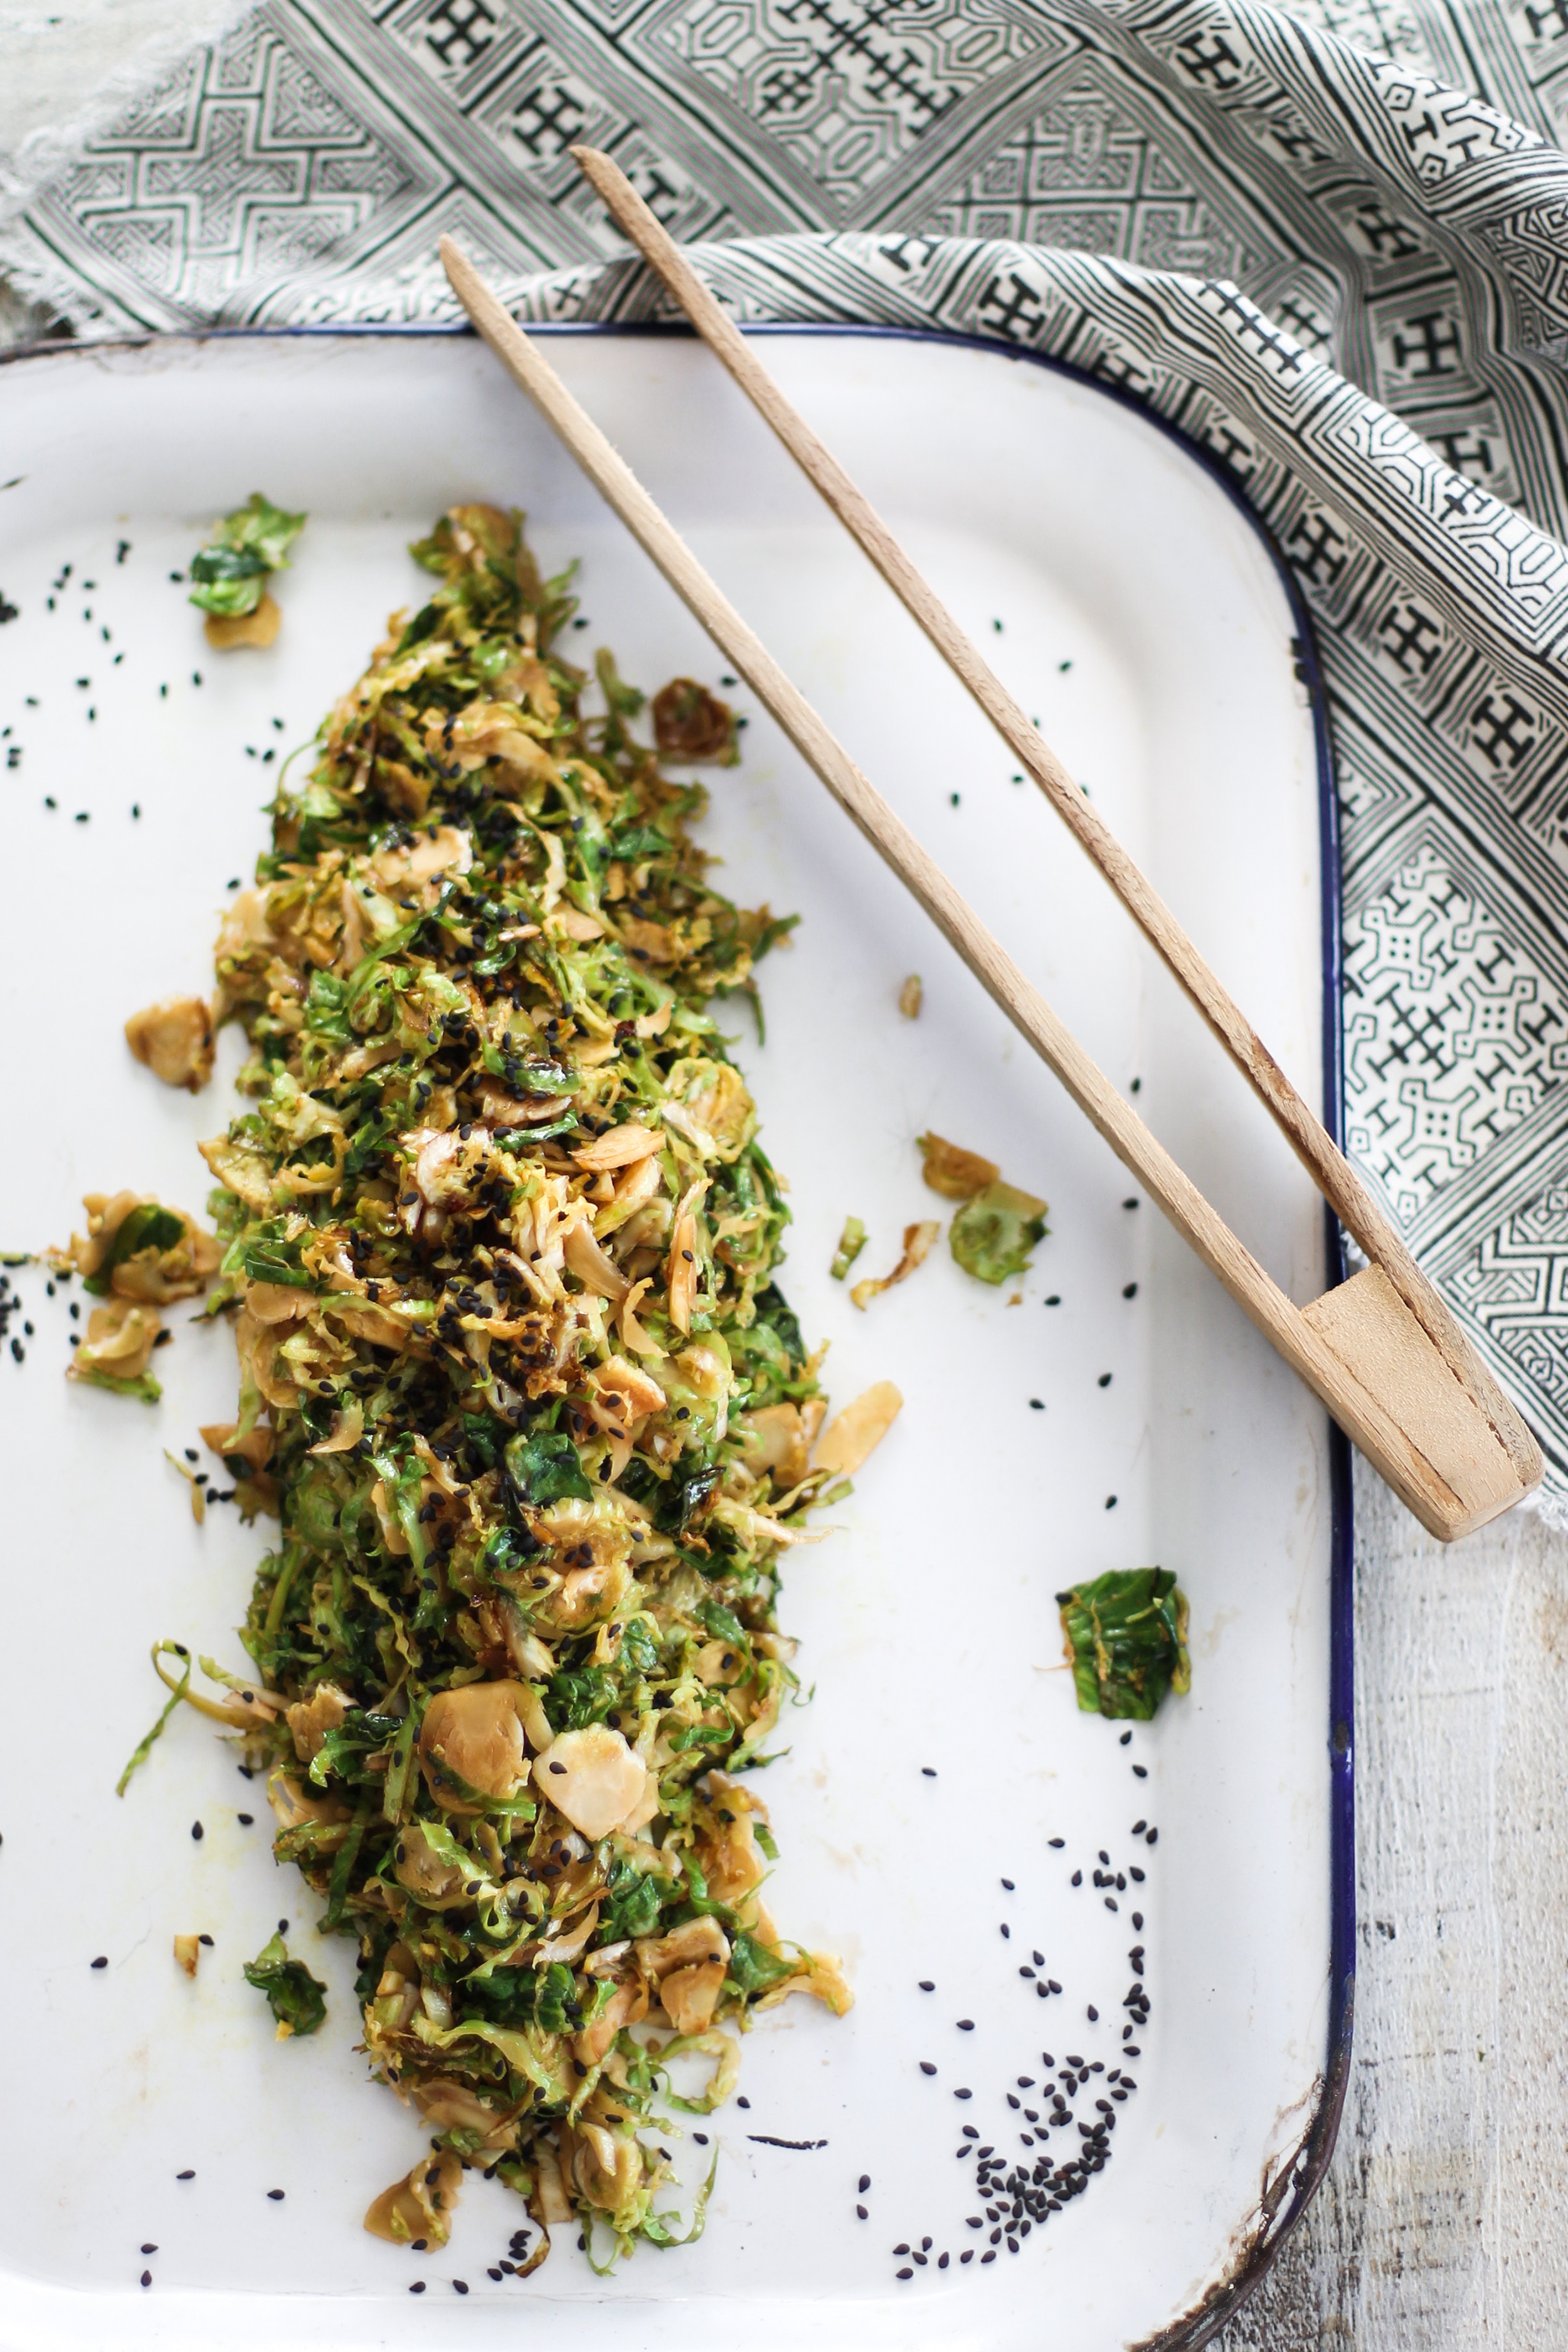 10-Minute Shaved Asian Brussel Sprouts: My Diary of Us